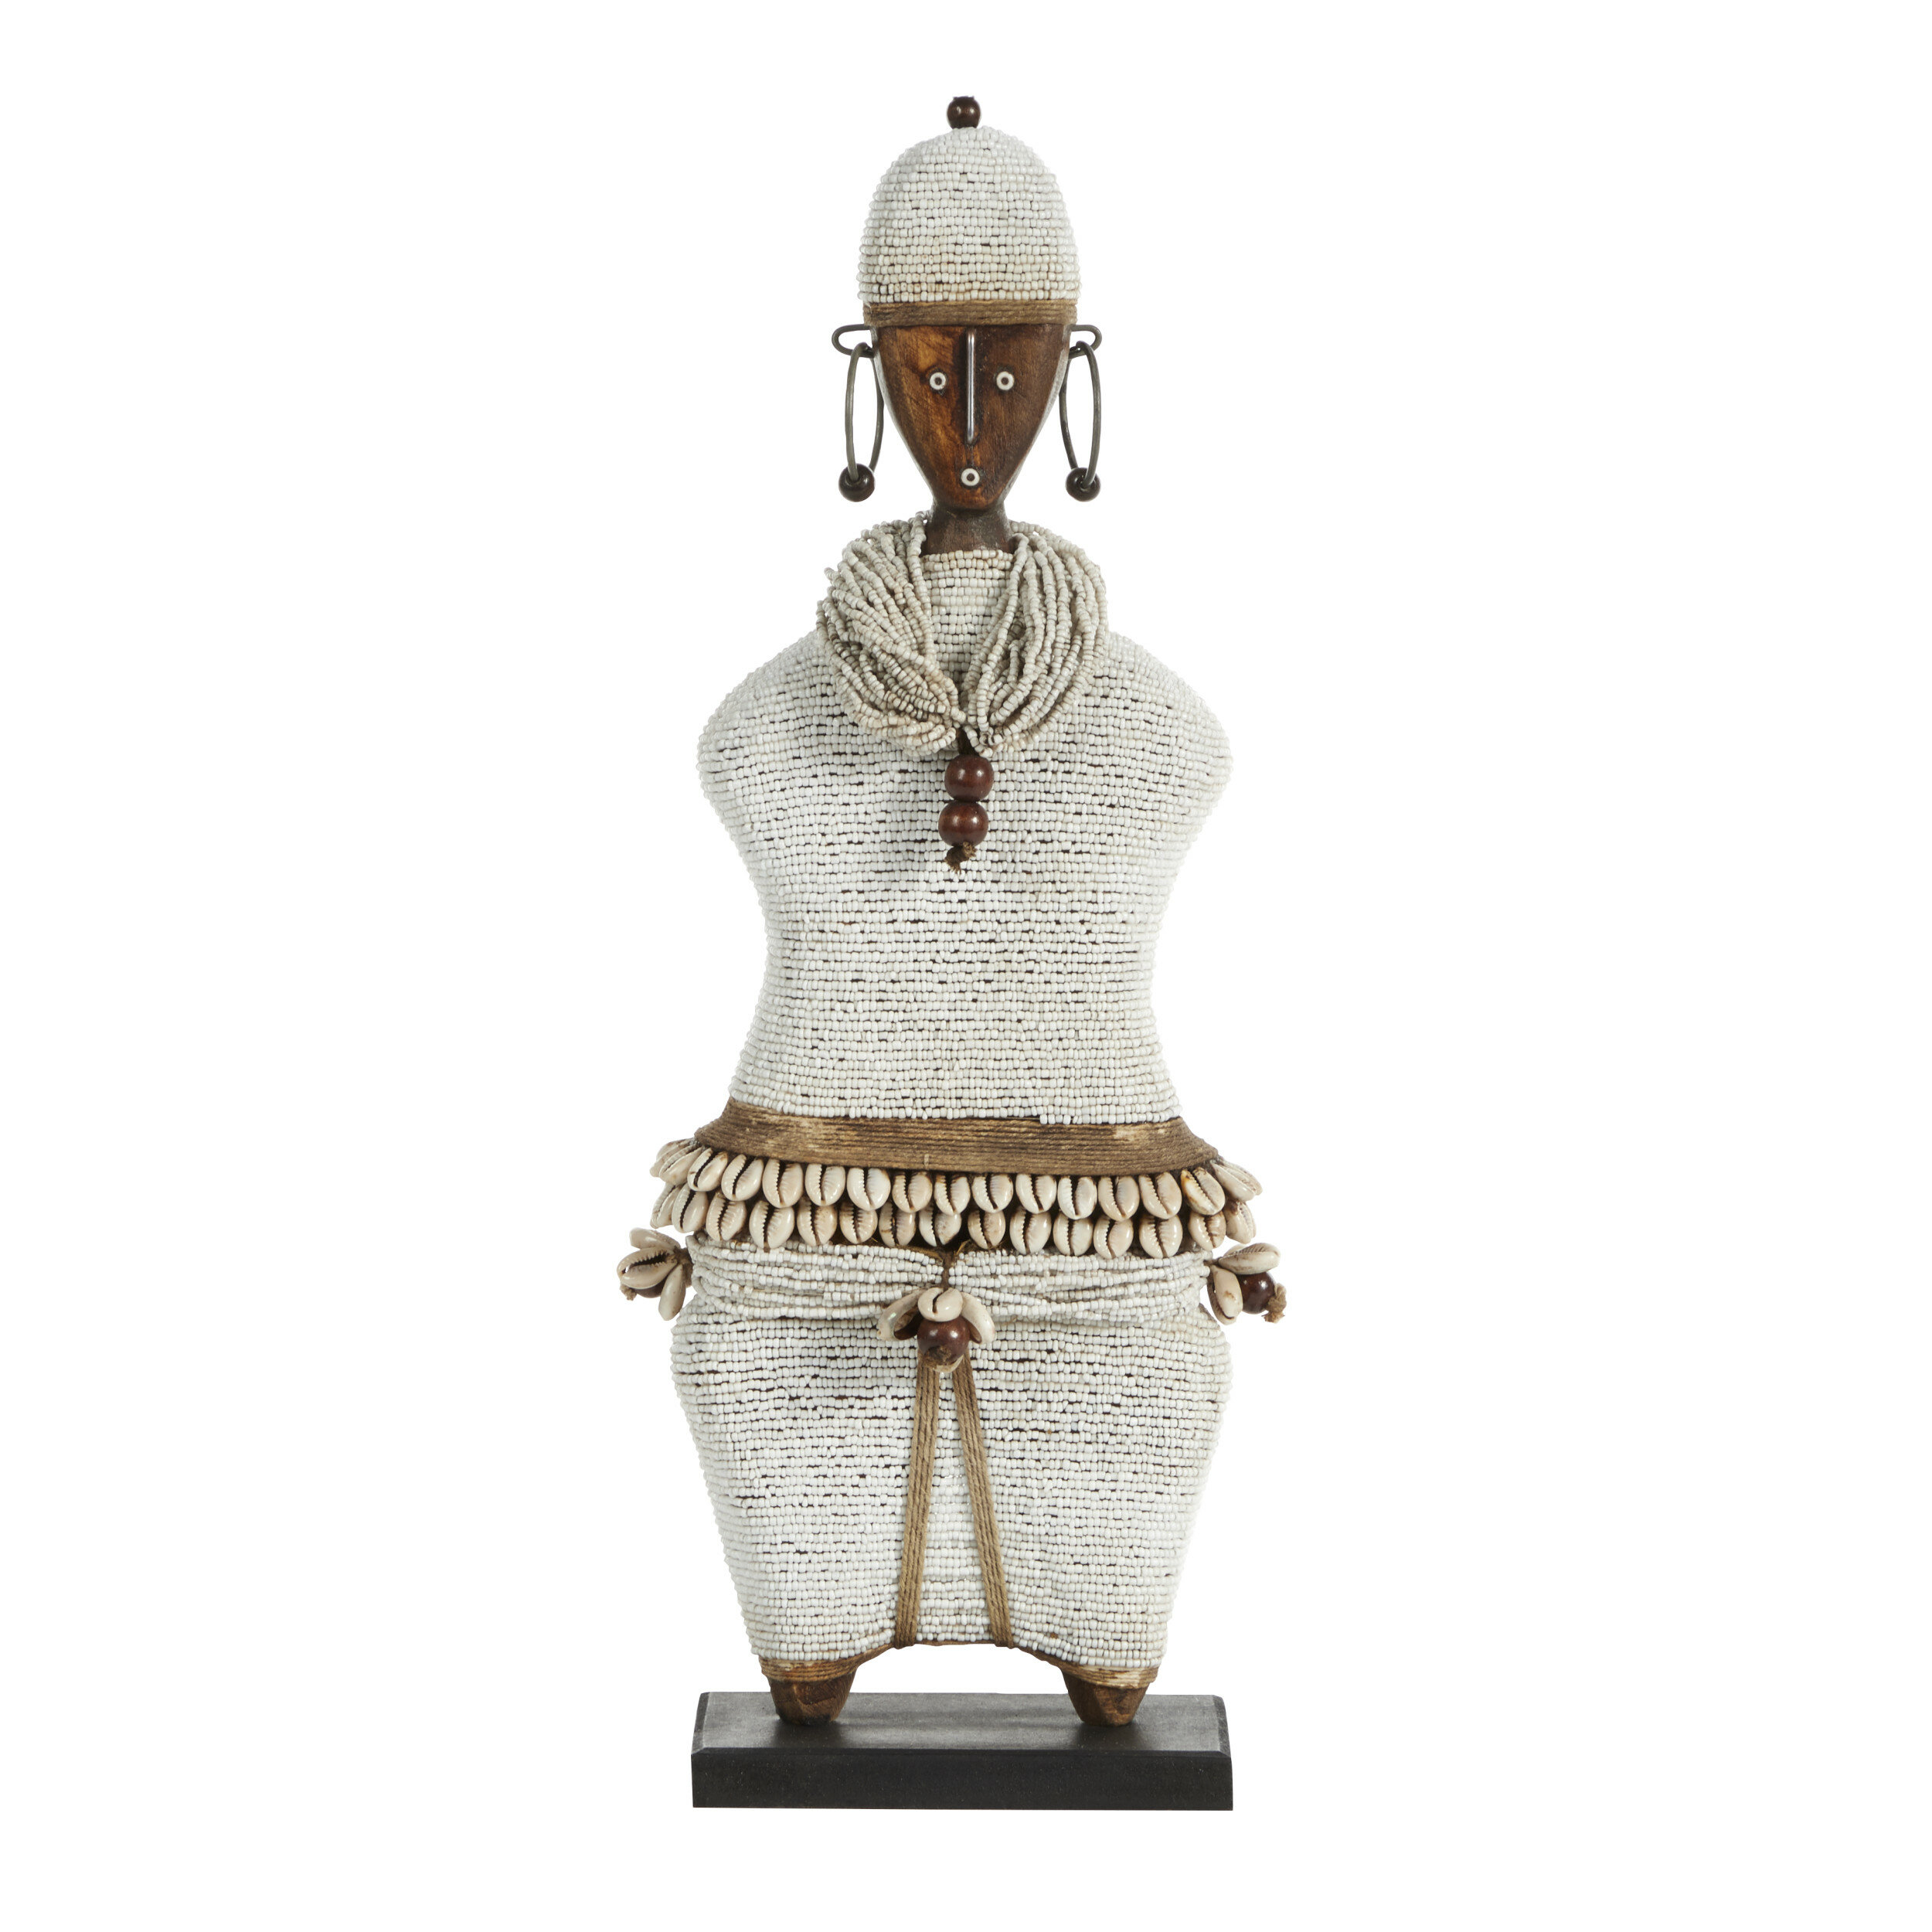 Africantreasures Large Hand Crafted Pine Cowrie Shells White Beads Kente Cloth African Woman Namji Doll Sculpture Perigold